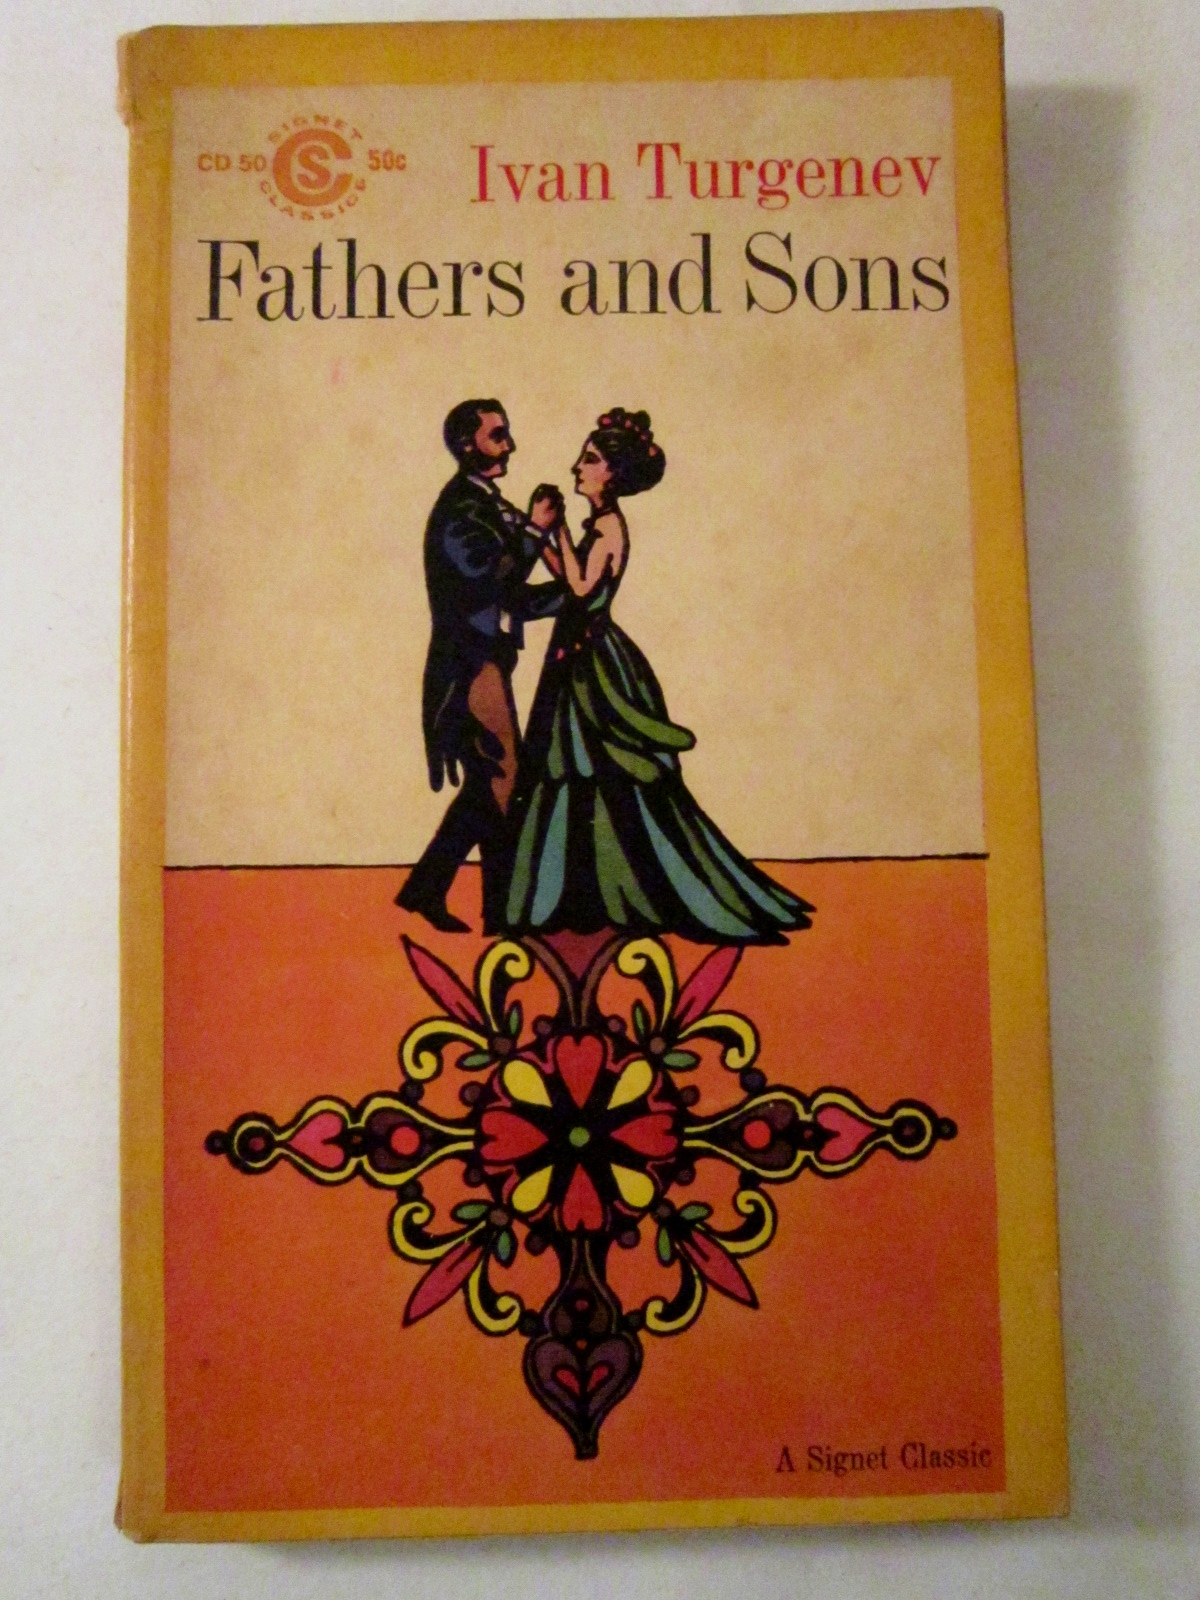 an analysis of the different views in the novel fathers and sons by ivan turgenev